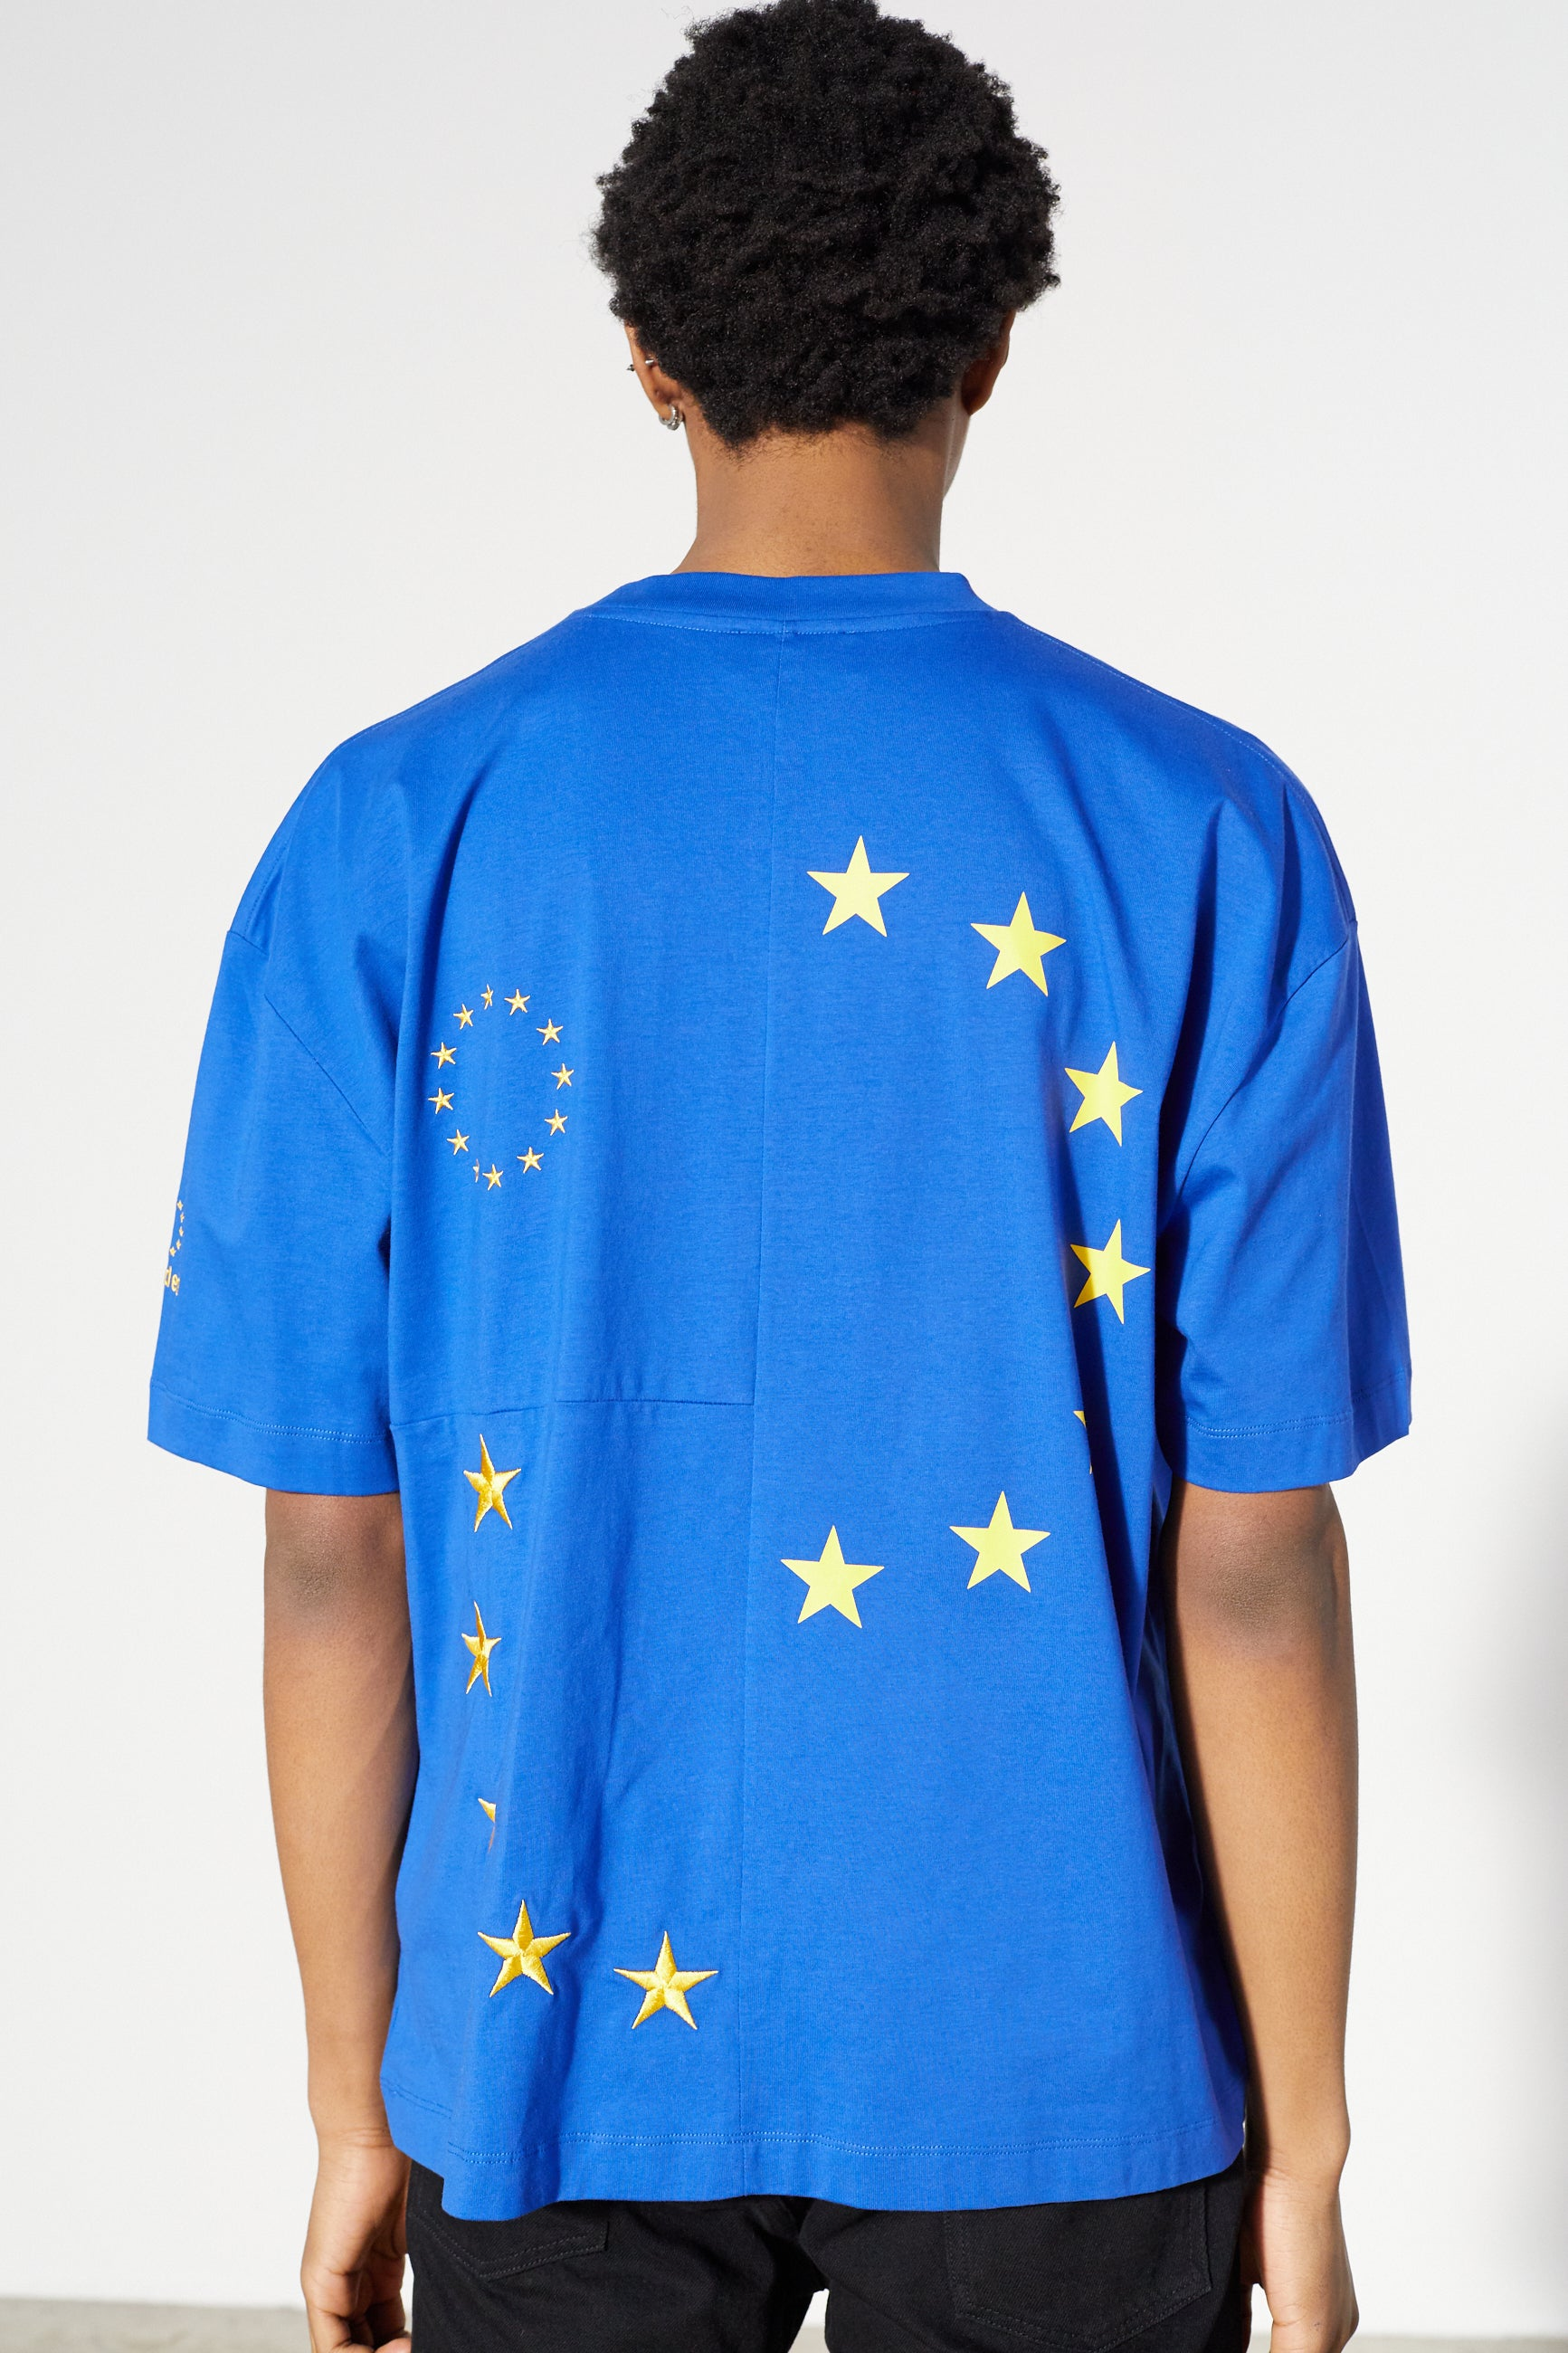 Études Spirit Cut-Up Europa Blue T-shirt 6